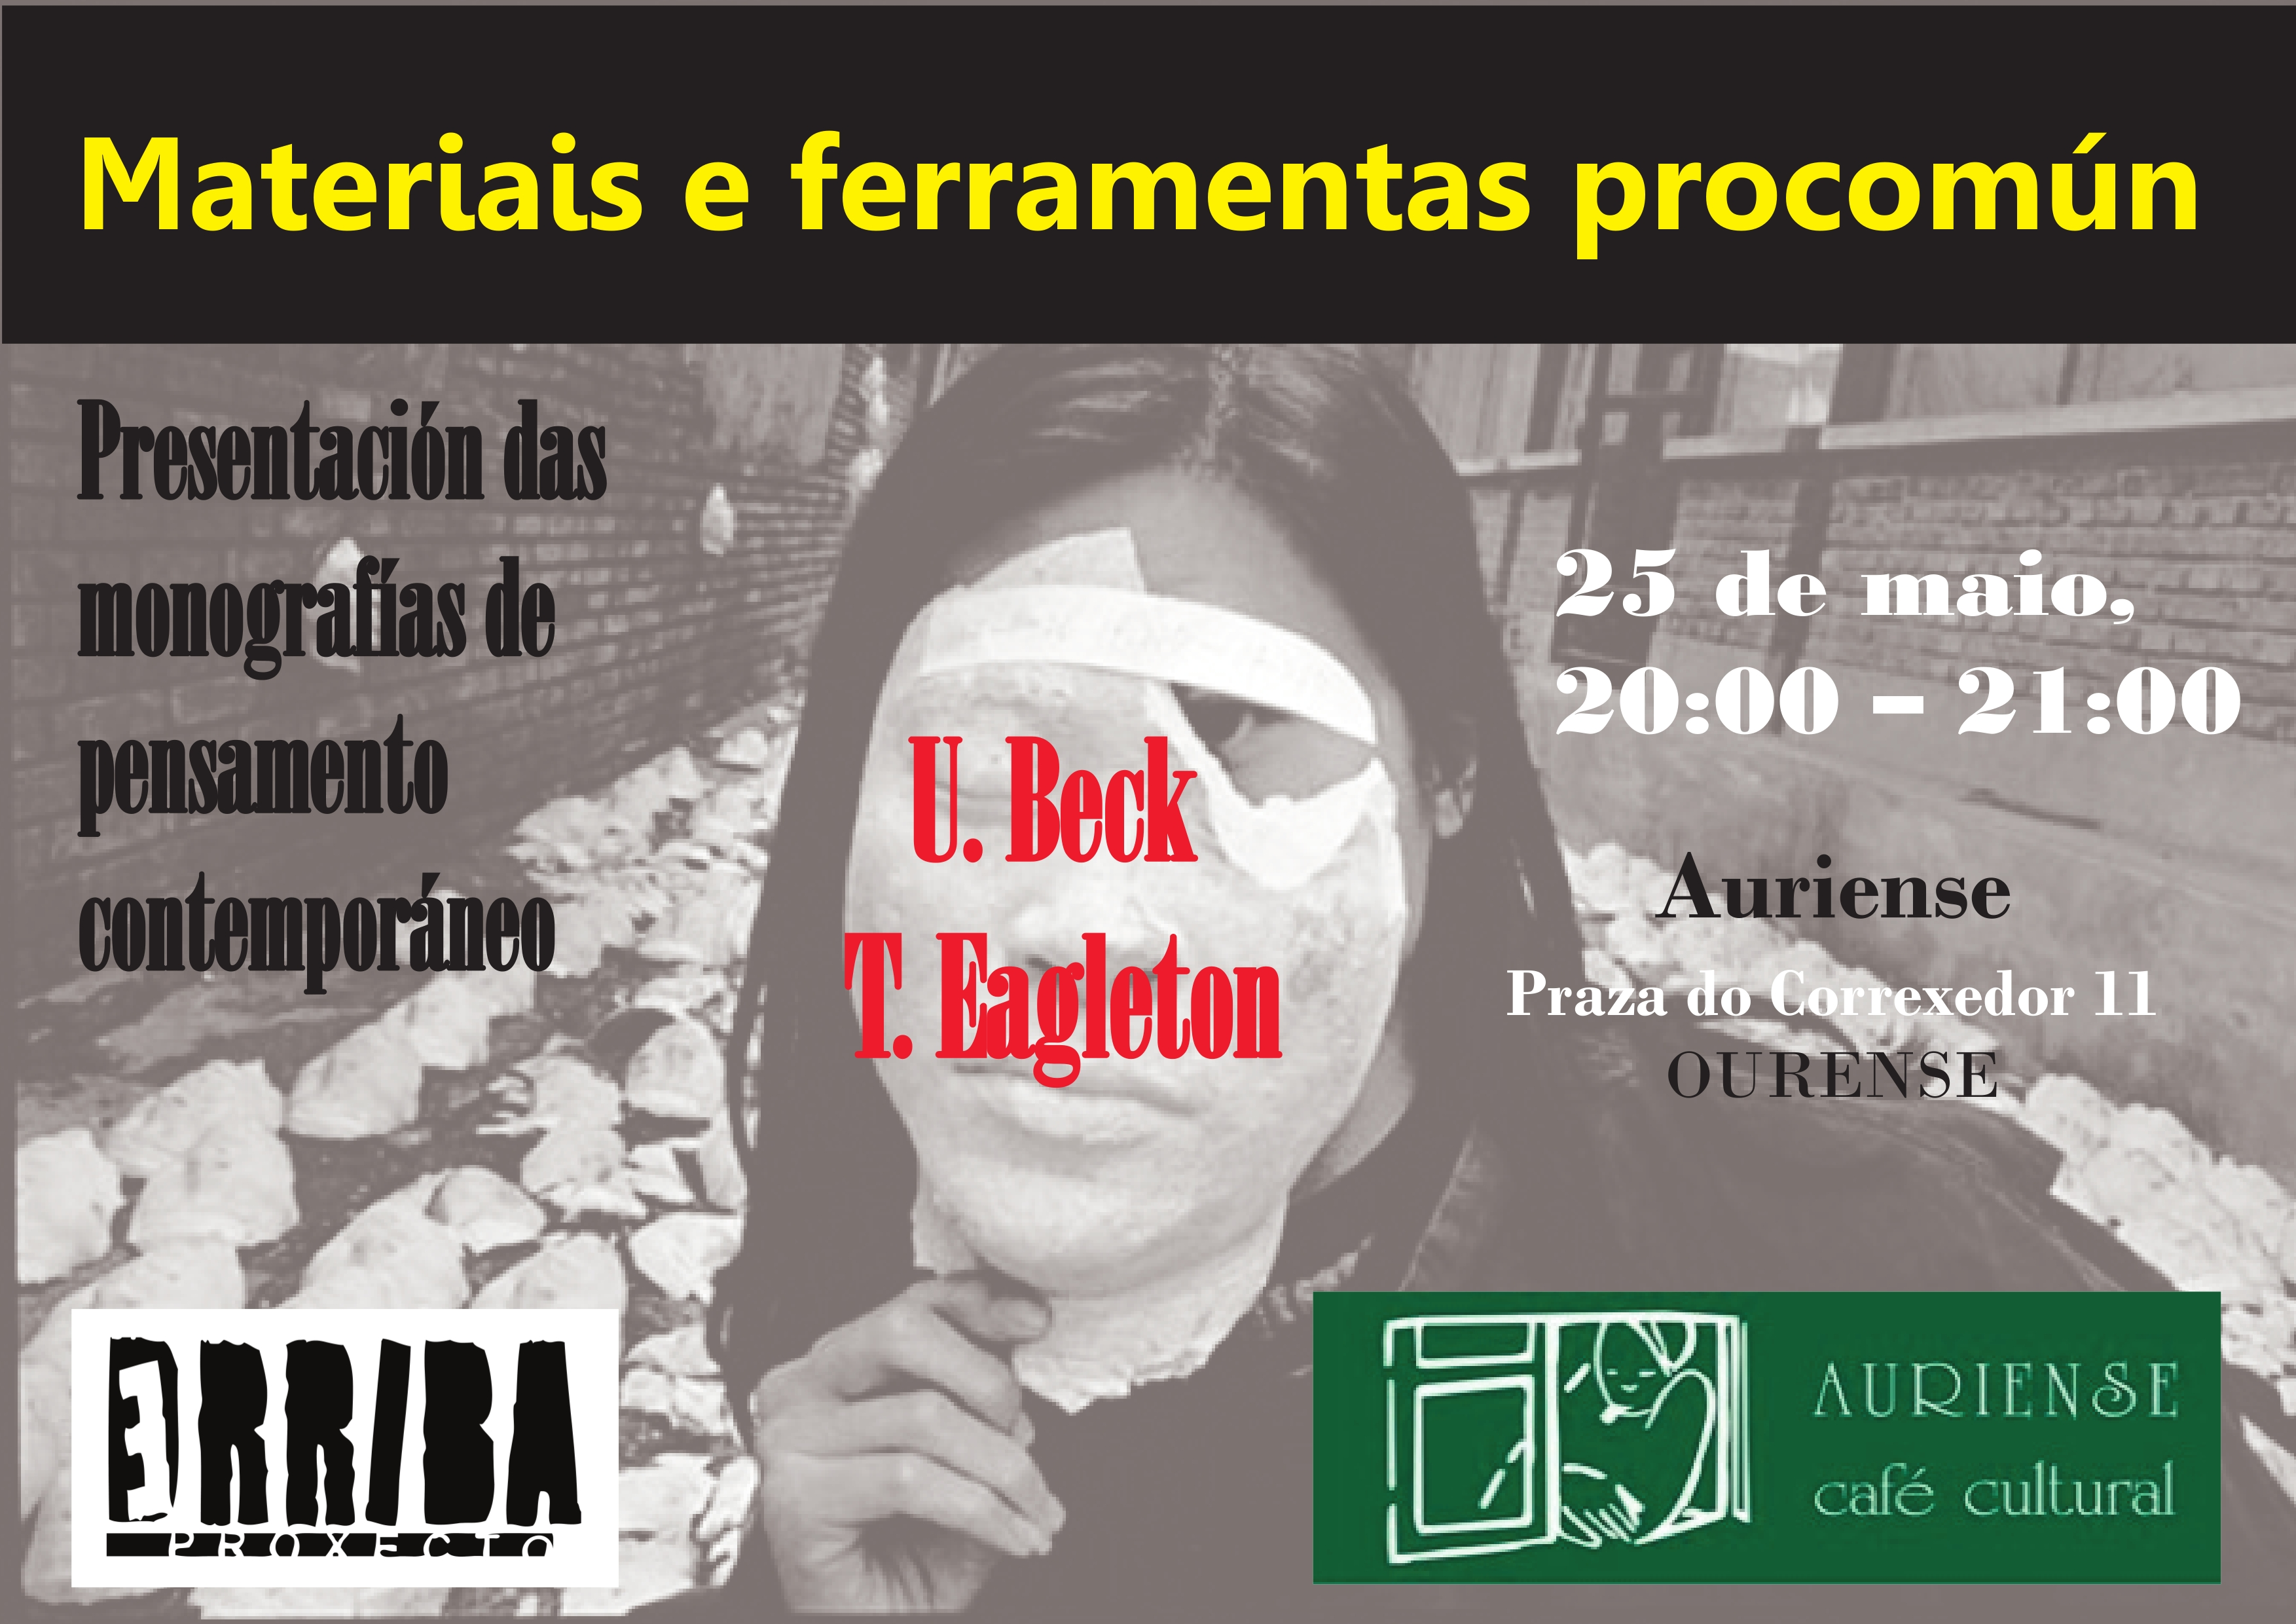 Auriense (Ourense) Presentacin monografas: ULRICH BECK e TERRY EAGLETON @ Caf cultural Auriense | Ourense | Galicia | Spain